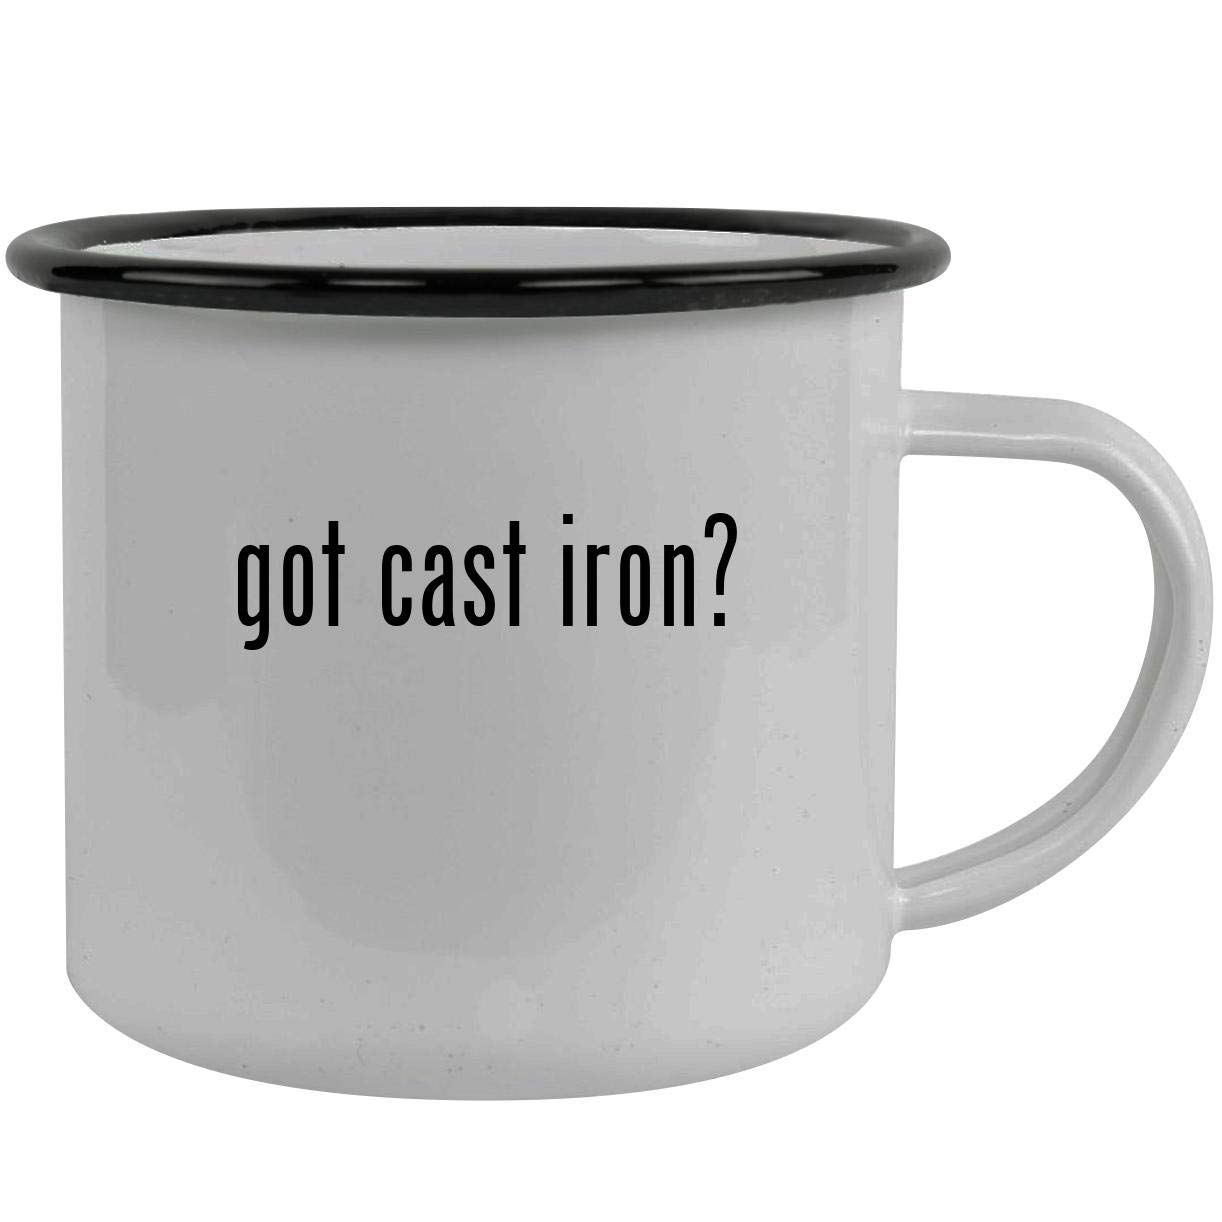 got cast iron? - Stainless Steel 12oz Camping Mug, Black